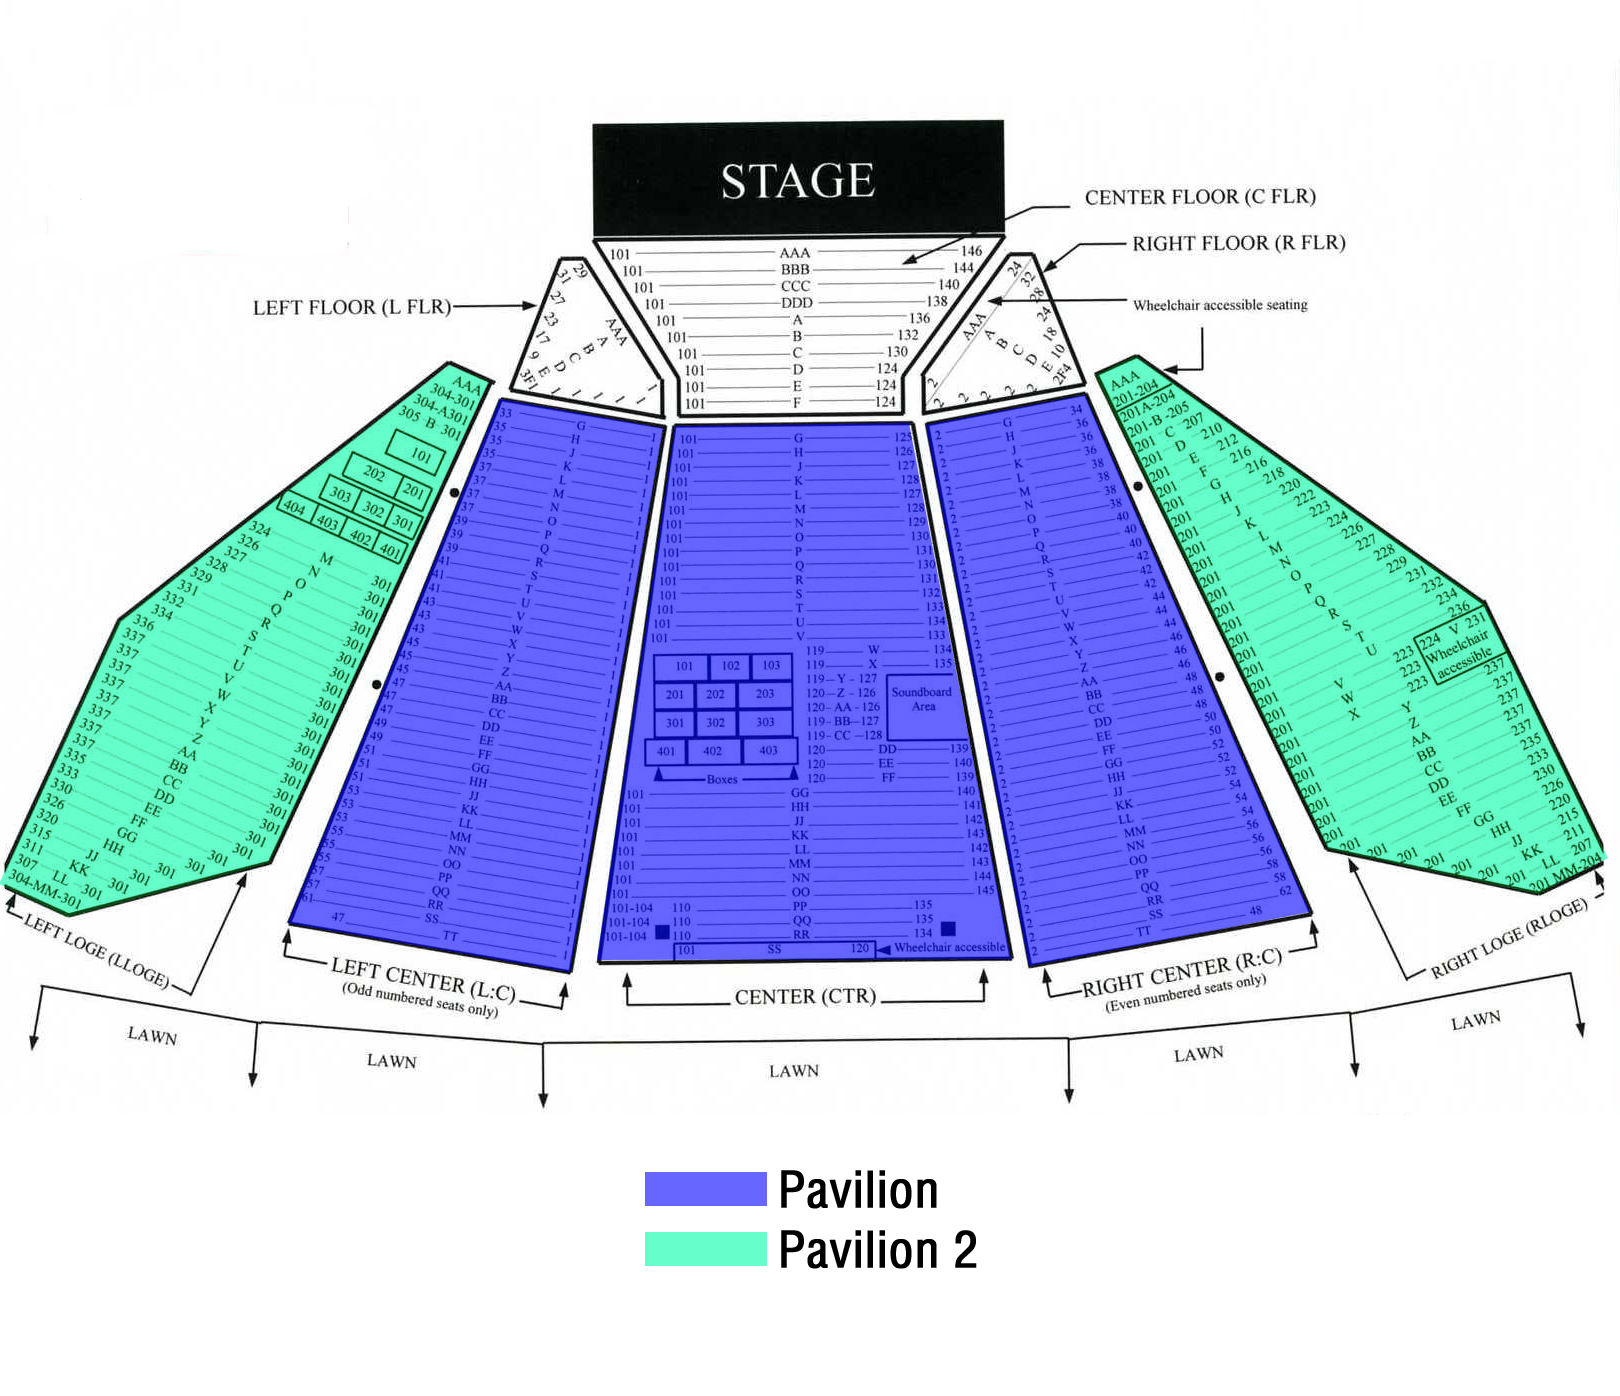 Merriweather post pavilion baltimore tickets schedule seating